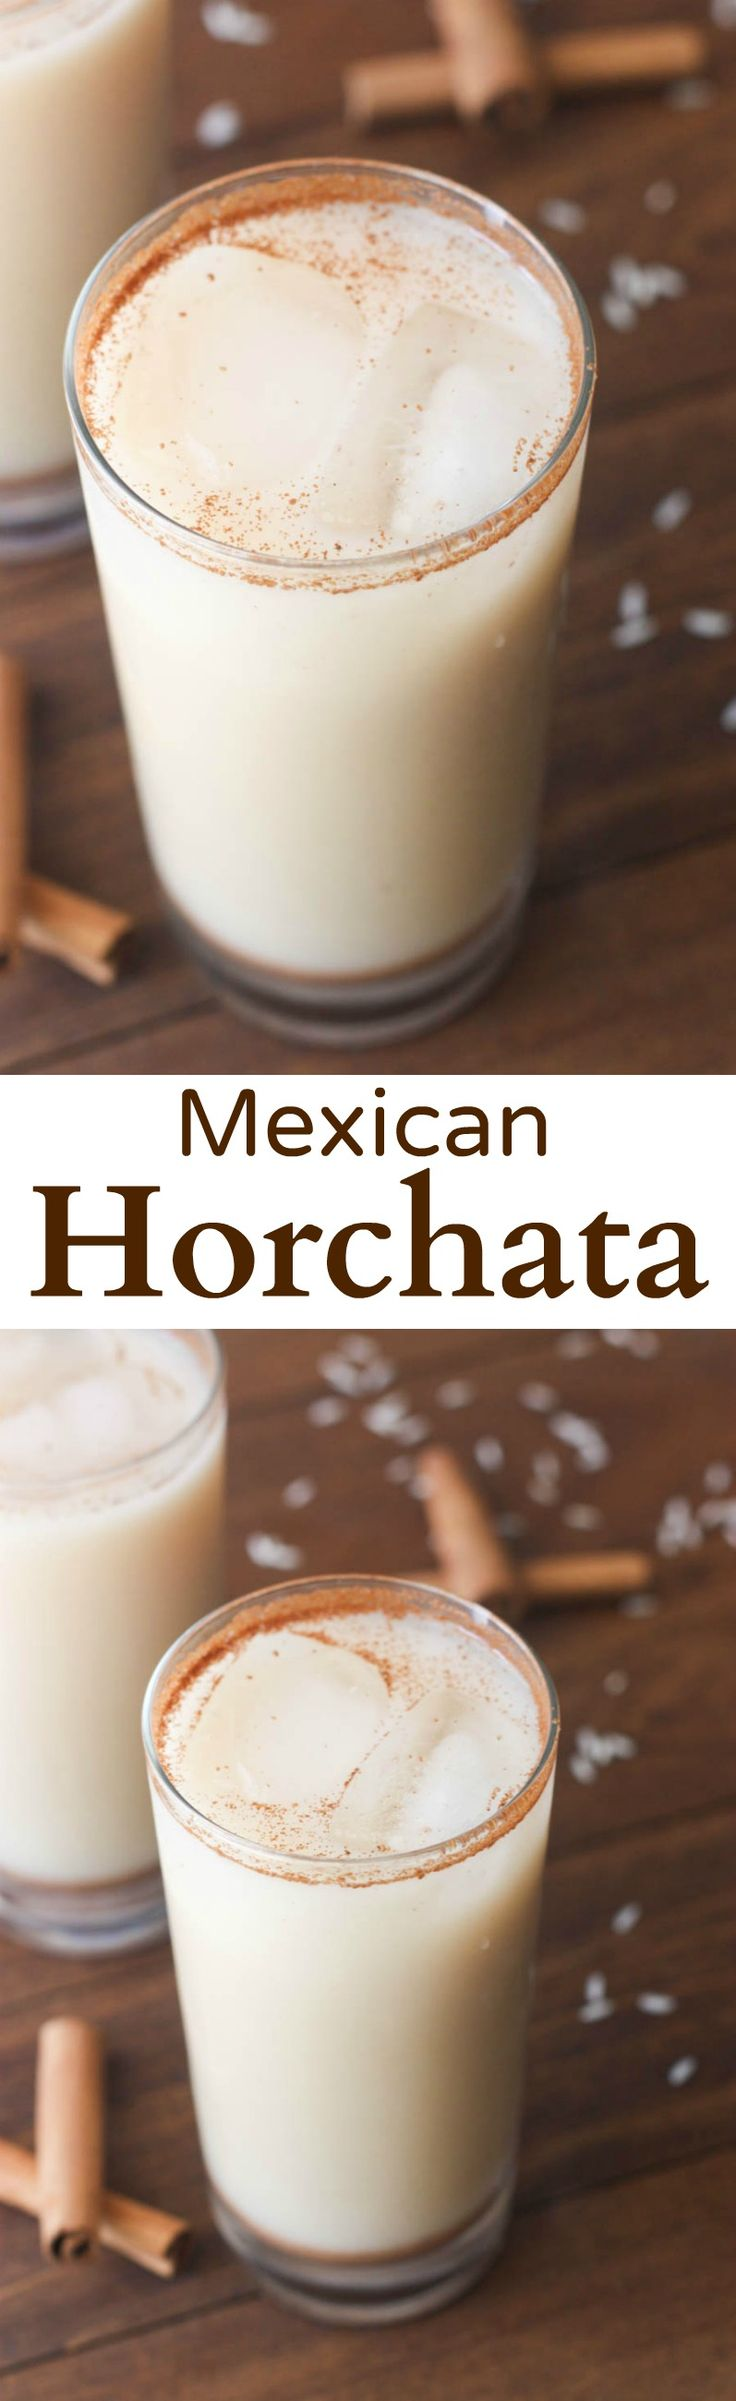 The easiest, creamy and slightly sweet homemade Authentic Mexican Horchata.  It's almost Cinco de Mayo guys!  A good excuse to throw a party with your friends and make some awesome homemade Mexican food! I'll be making several of my favorite Mexican dishes, particularly Authentic Mexican Rice and Cantina-Style Salsa.I've found that my way of judging... Read More »